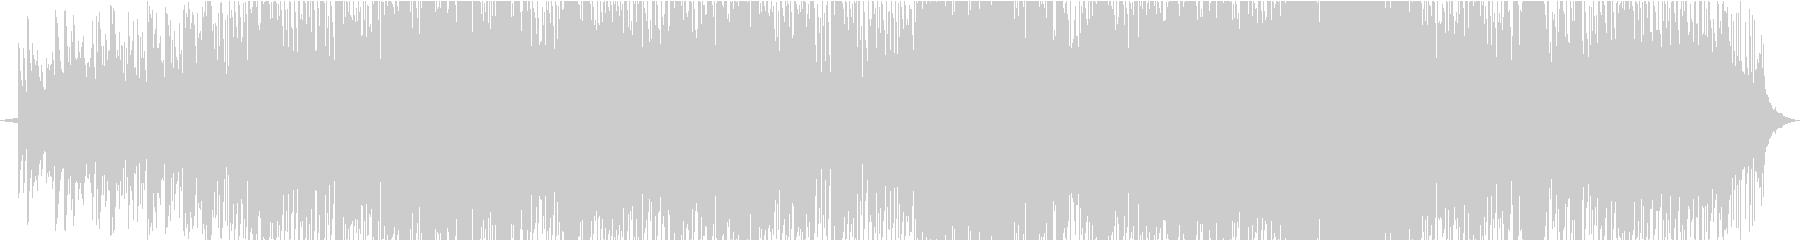 Sakura song sung in a catchy melody's unreproduced waveform